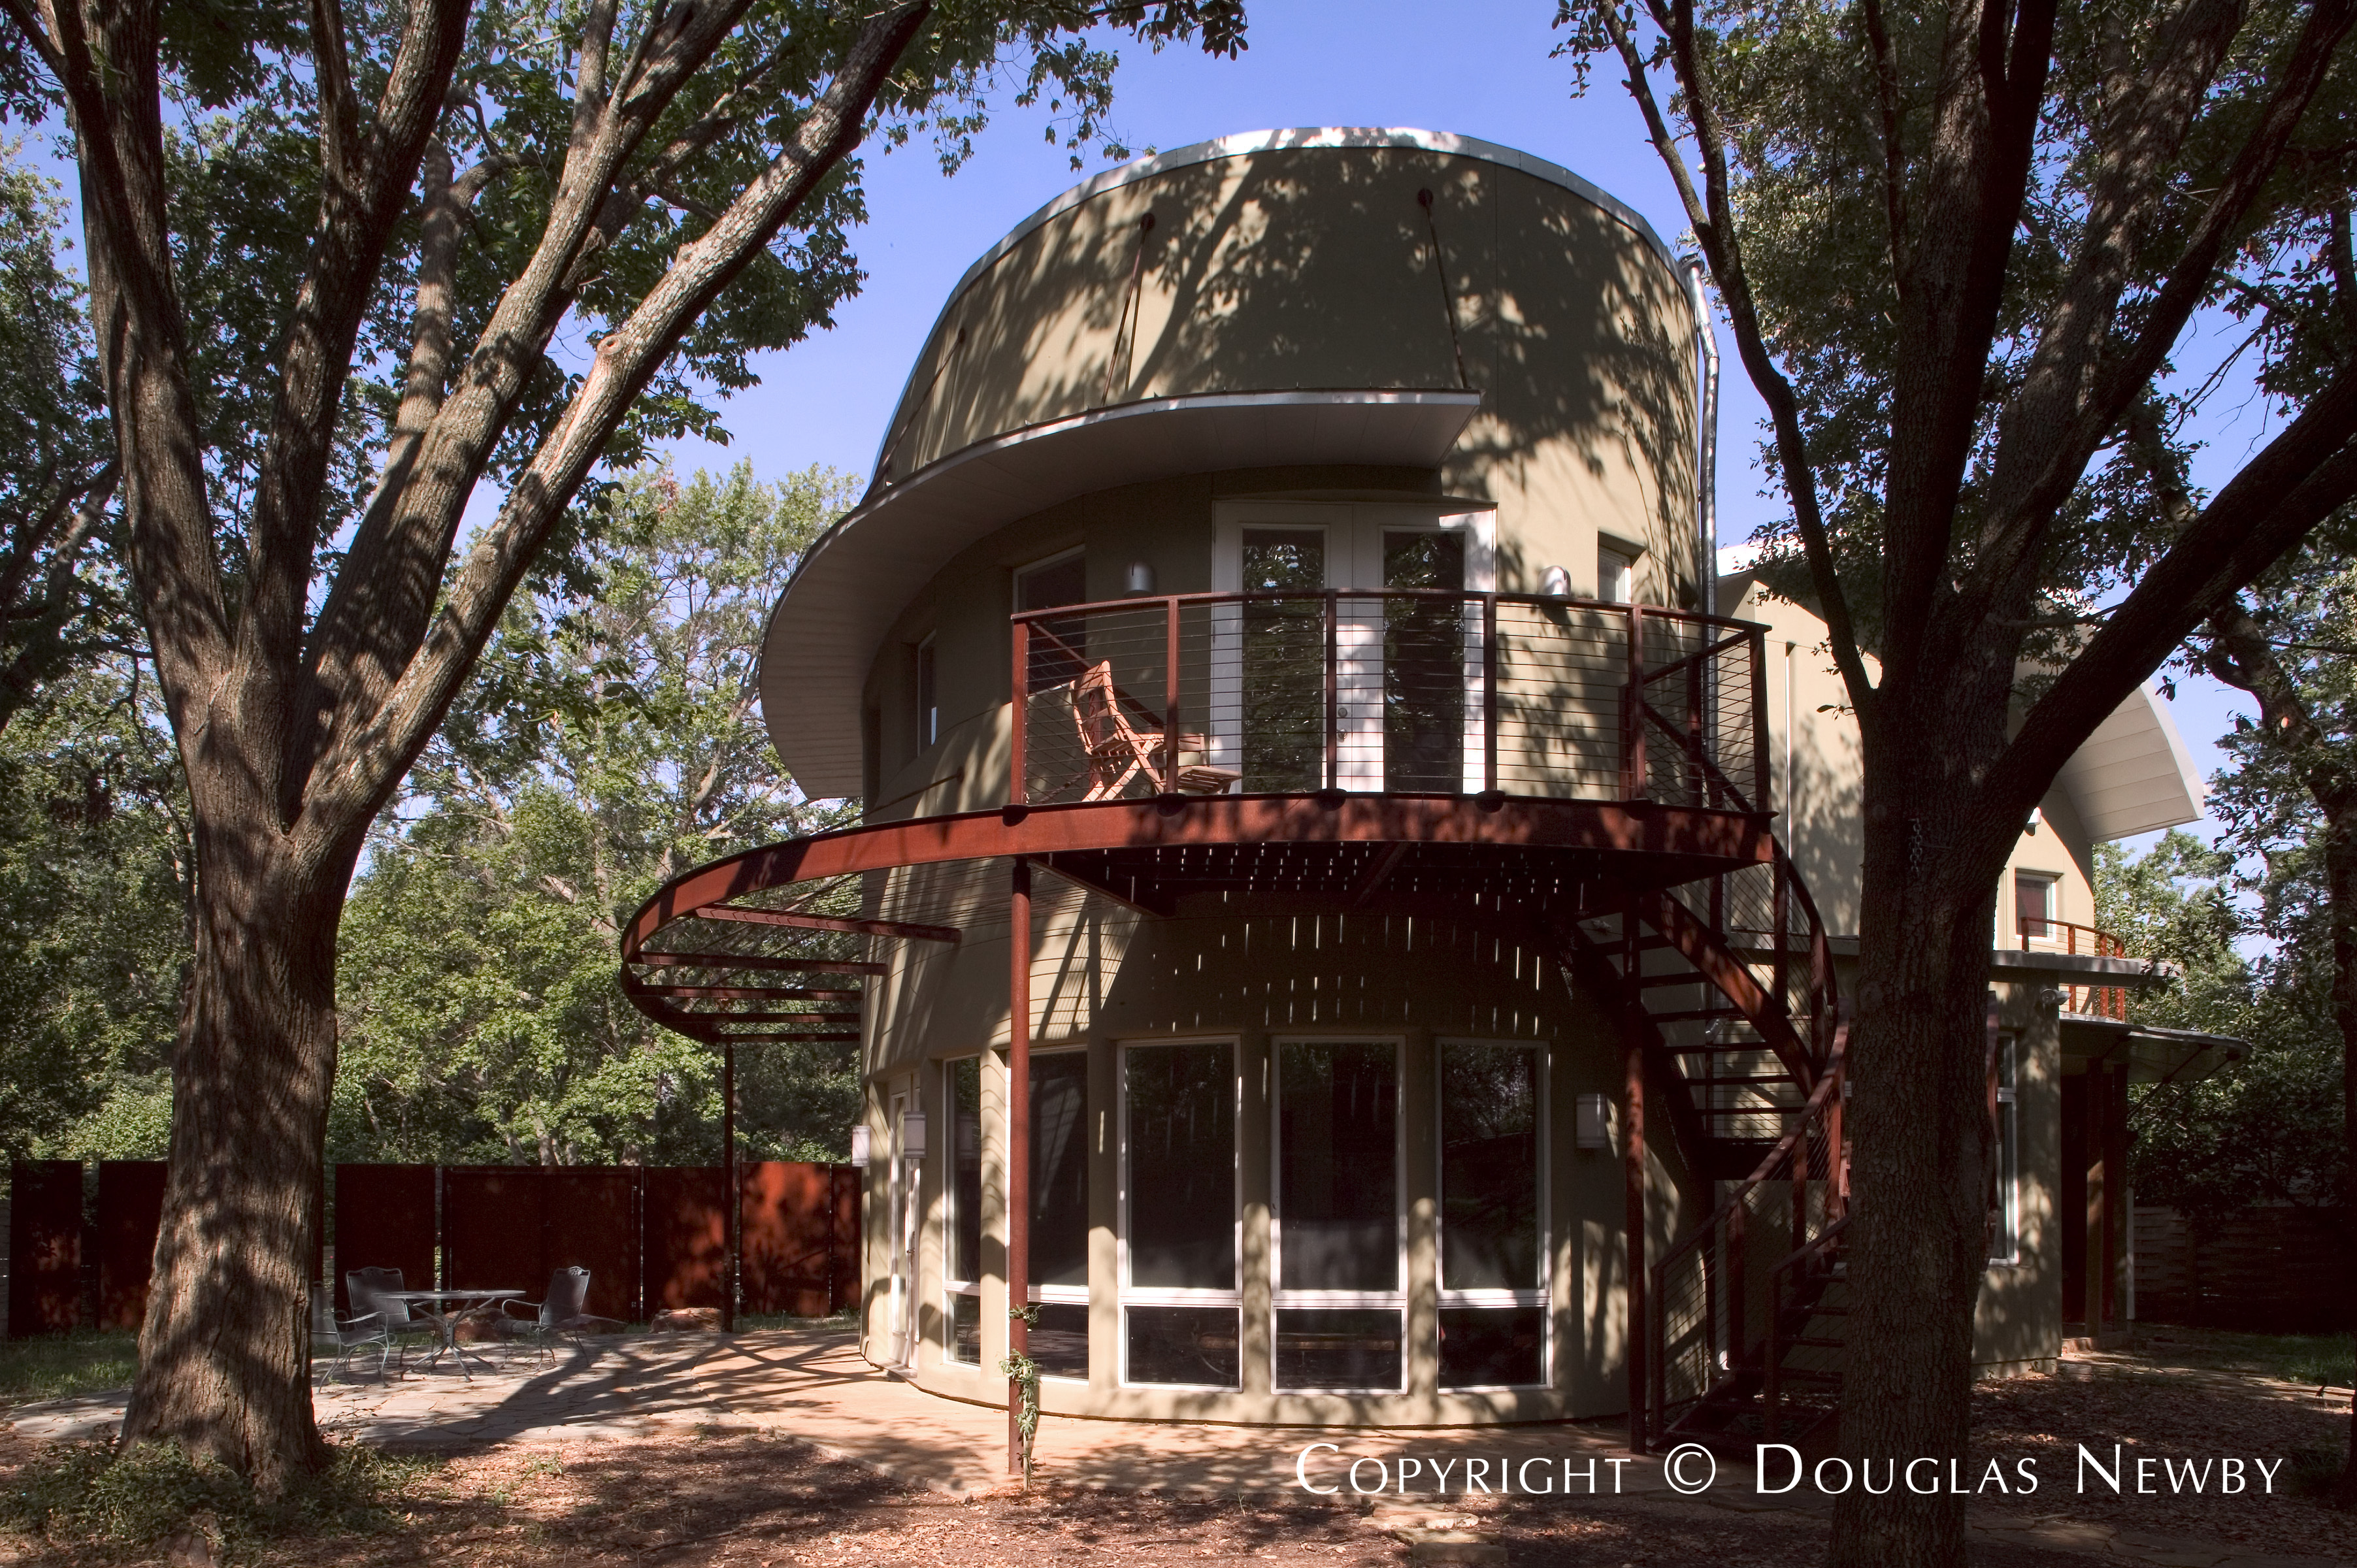 Architect Gary Gene Olp Designed Green Home in Bluffview Area